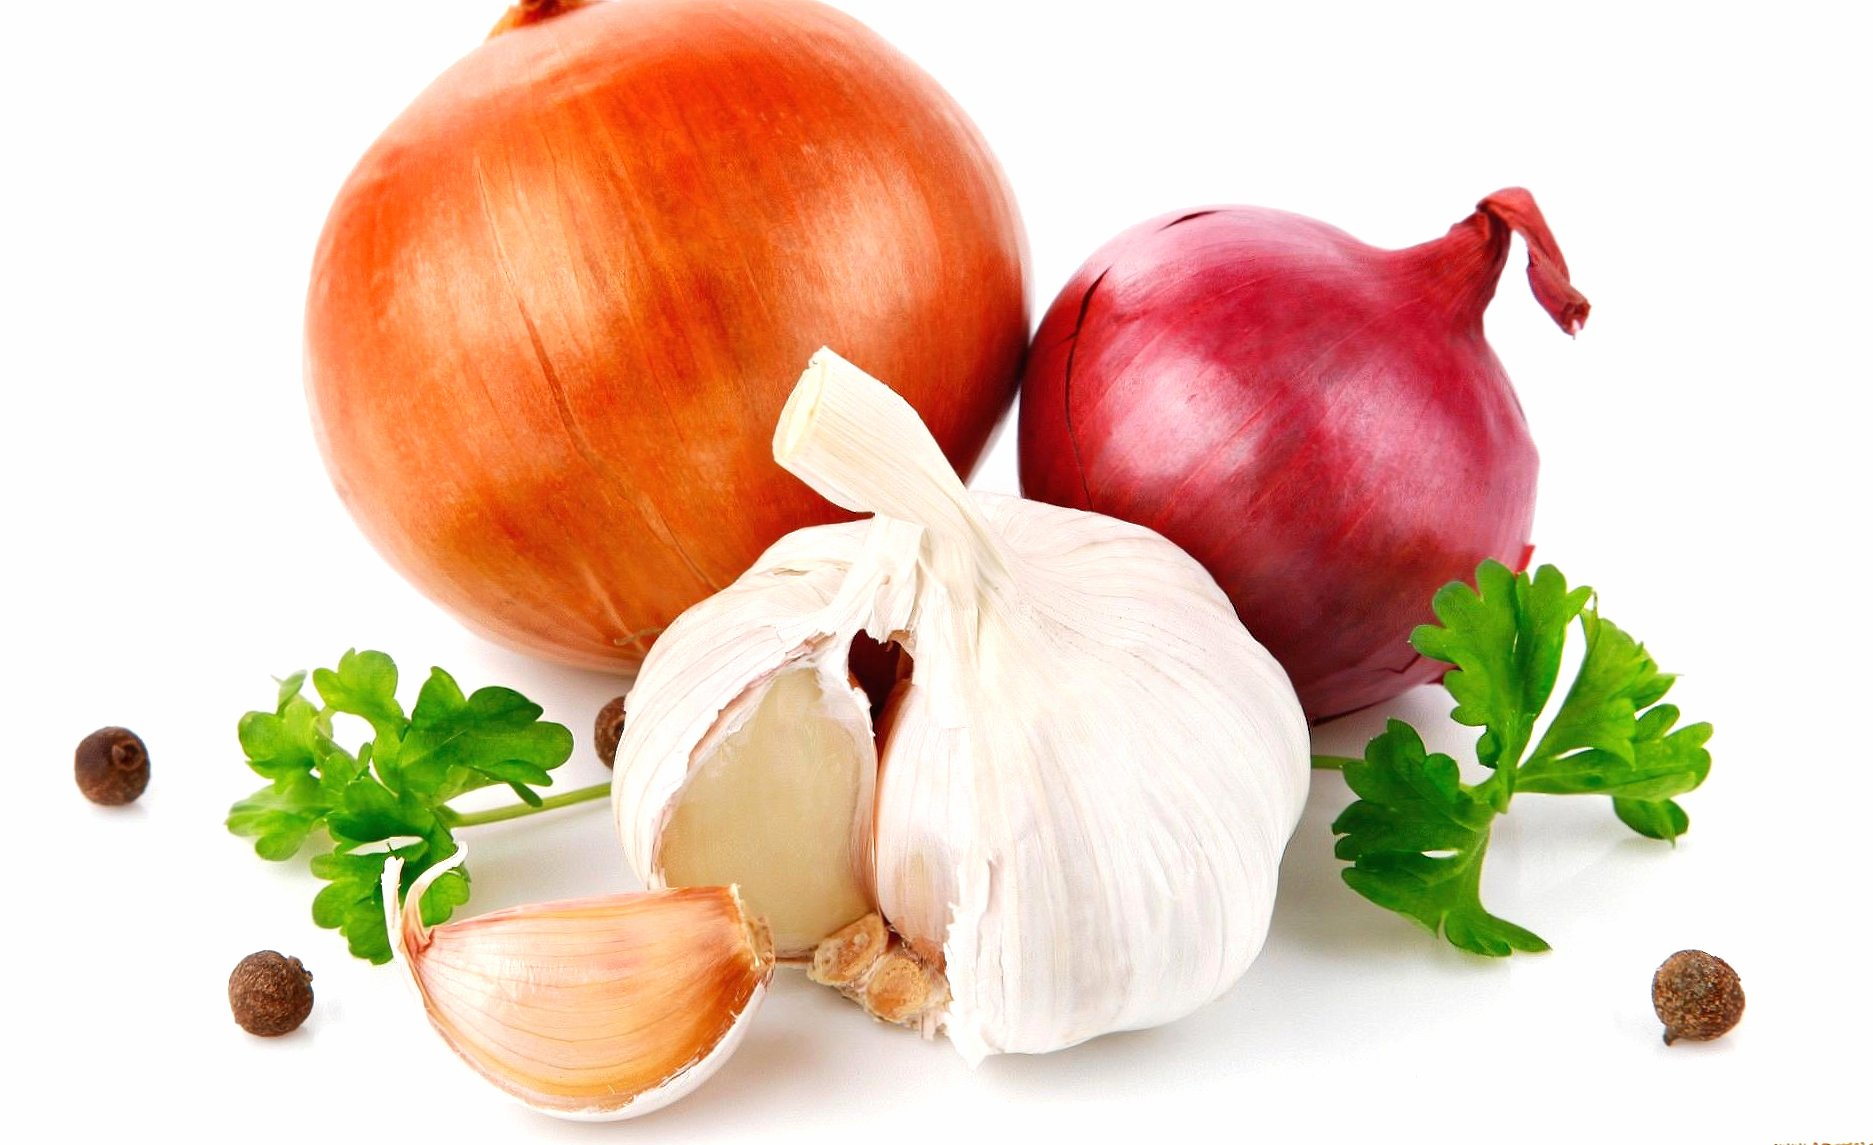 Onions and garlic wallpapers HD quality